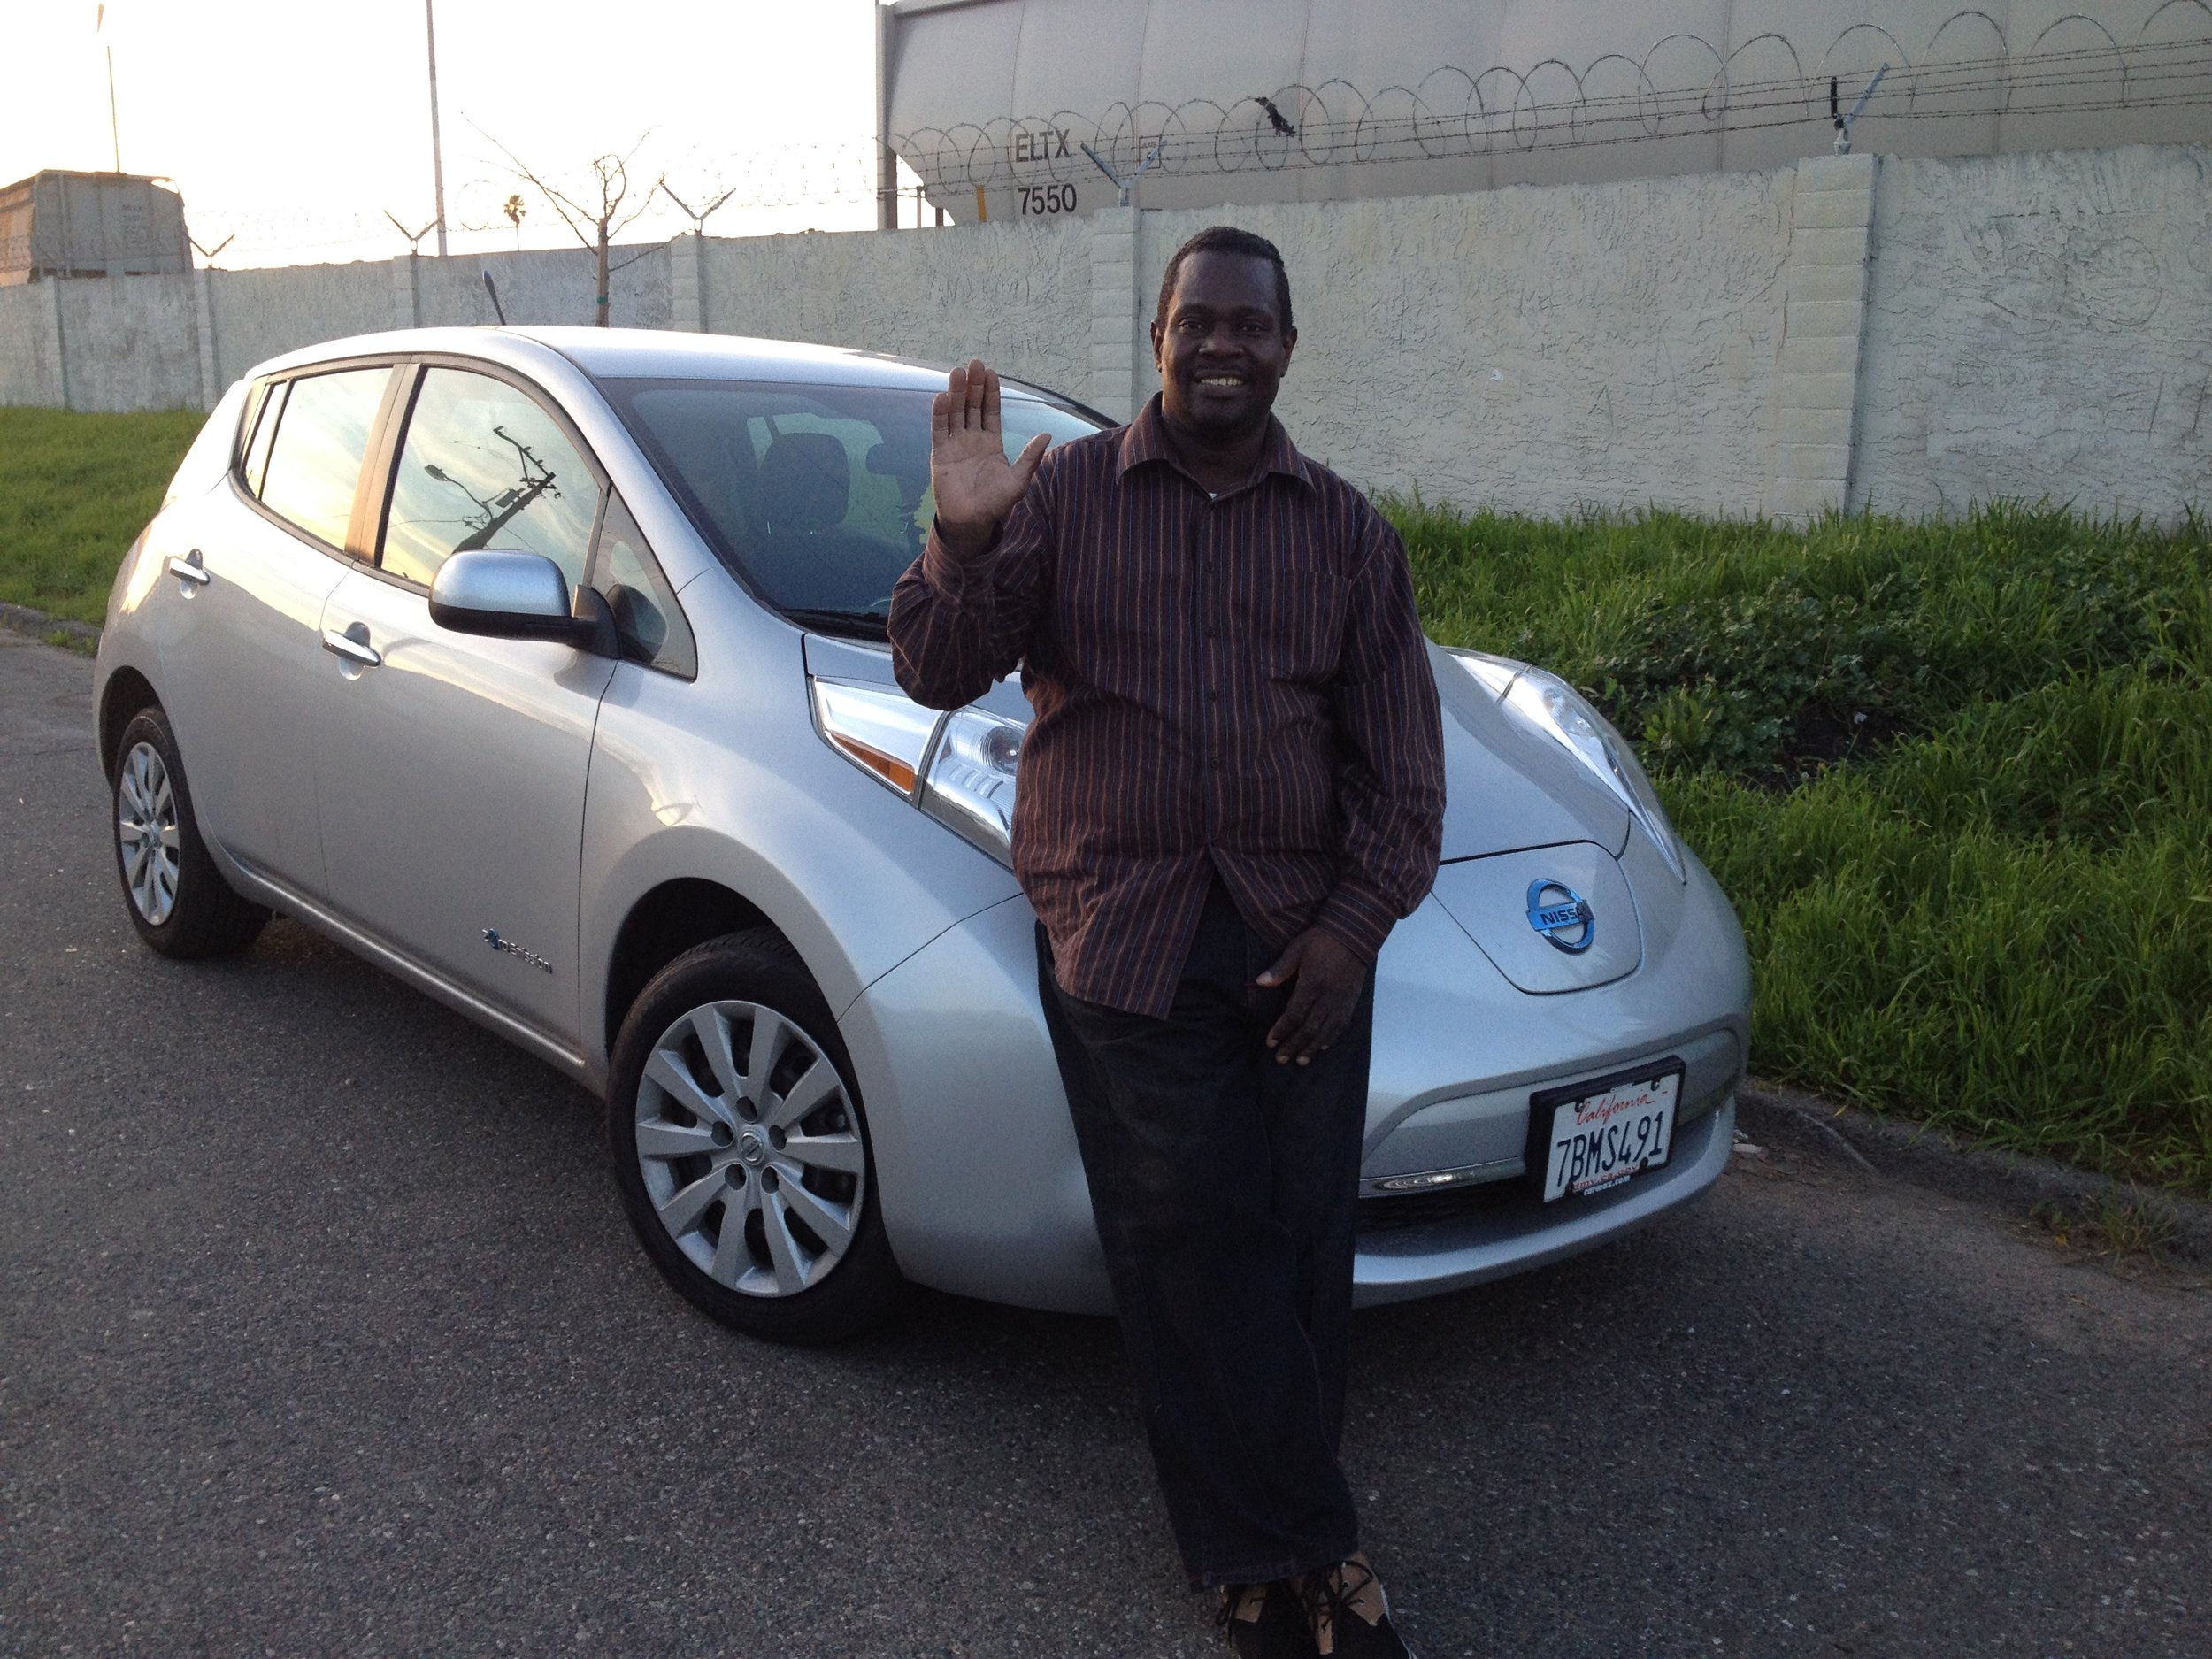 EFMP participant Jerome Mayfield stands next to his pre-owned clean car